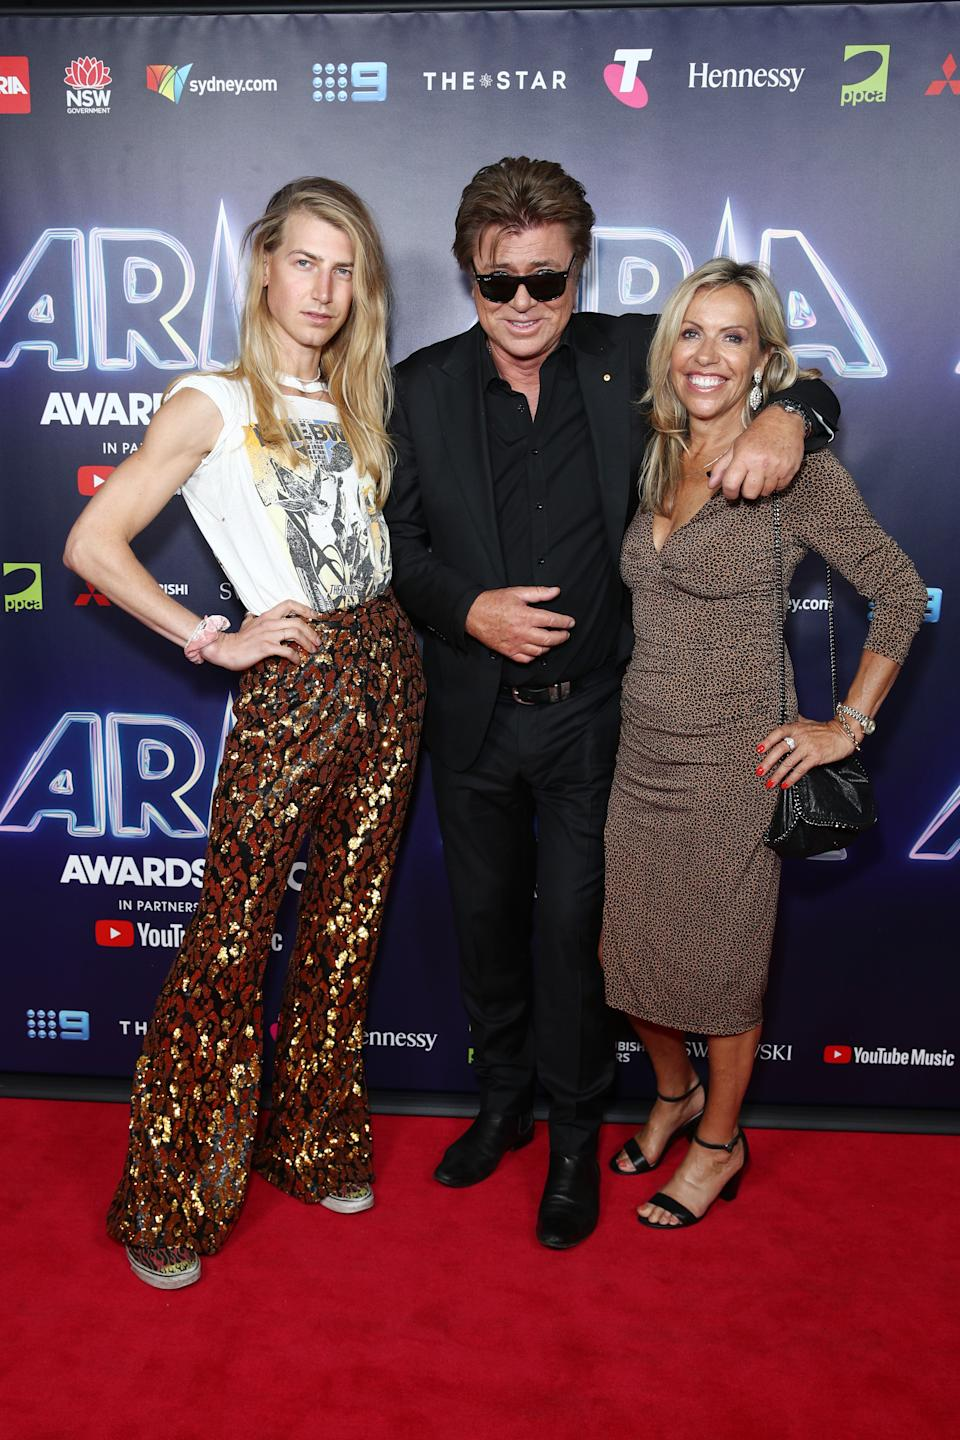 Christian Wilkins, Richard Wilkins and Nicola Dale on the red carpet at the 2020 ARIA Awards at The Star on November 25, 2020 in Sydney, Australia.